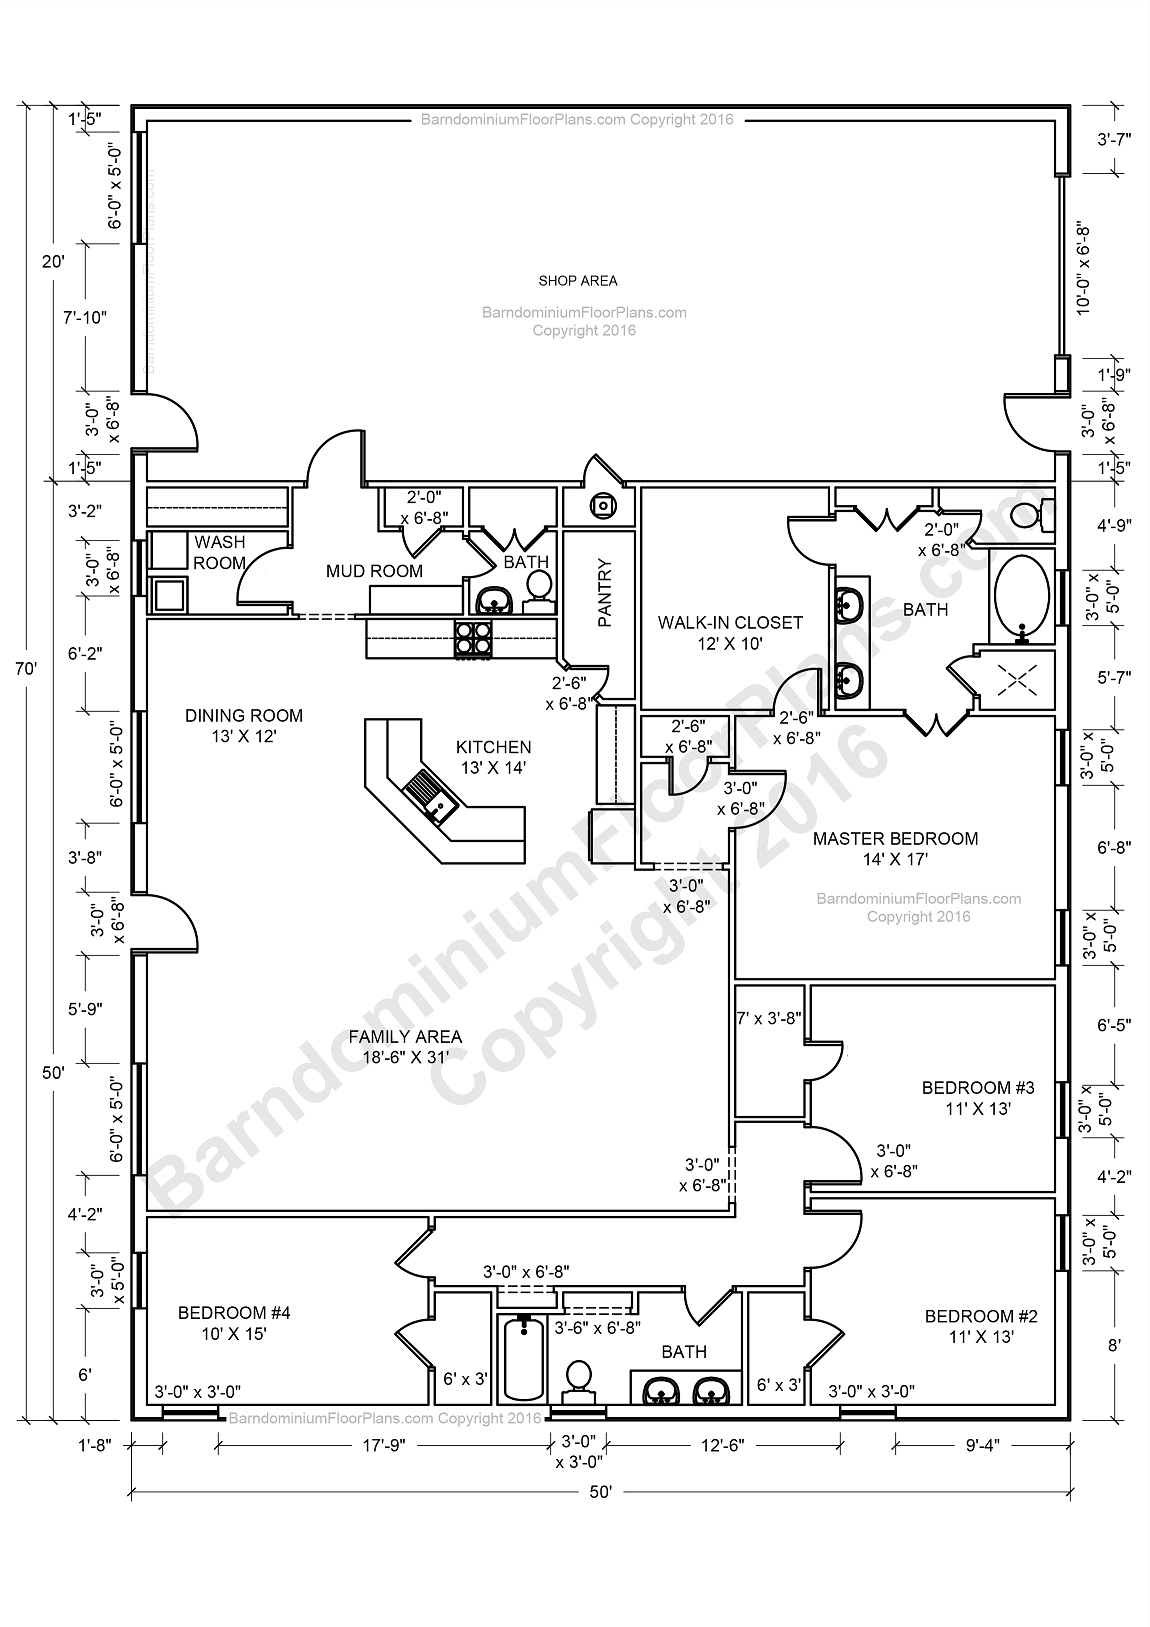 Barndominium floor plans barndominium floor plans 1 800 for Pole barn house plans